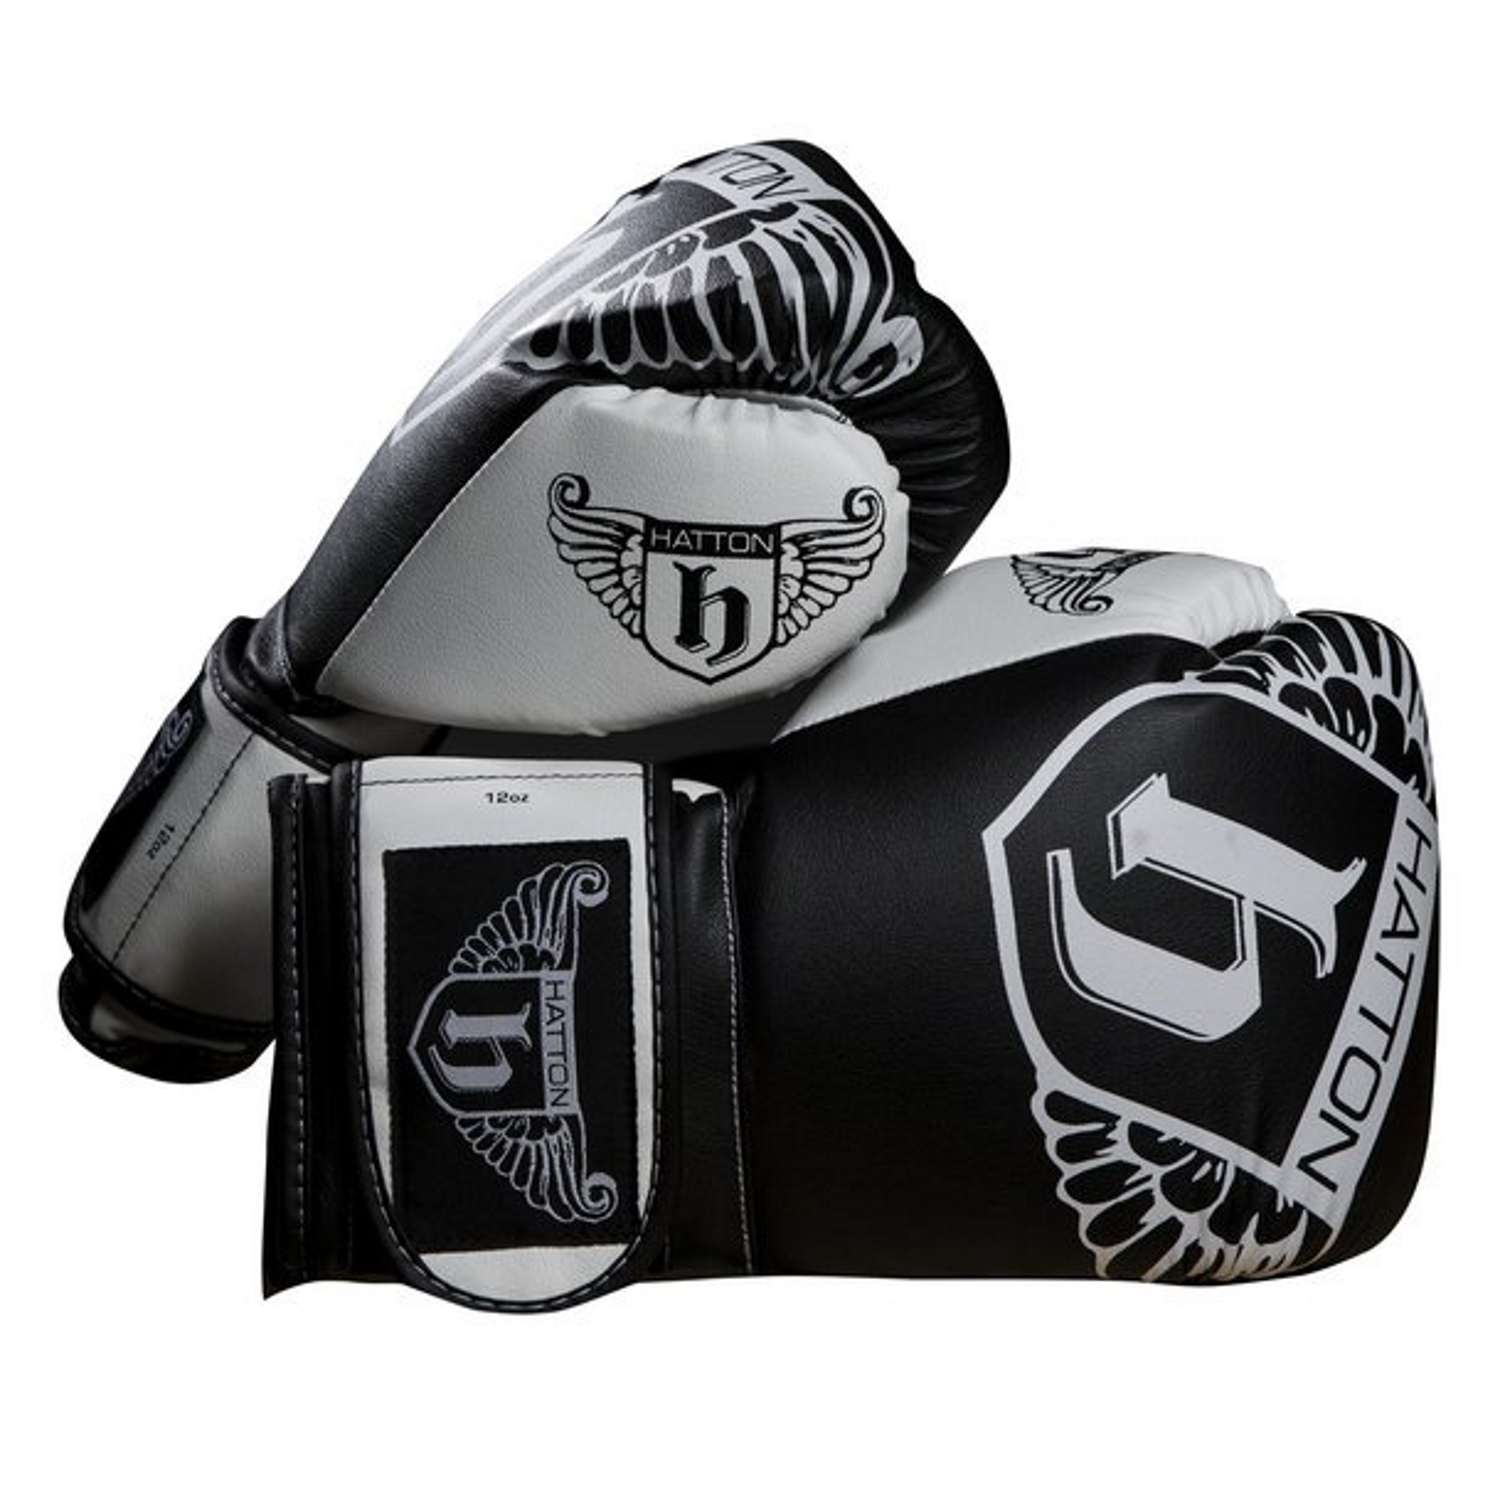 Hatton PU Boxing Gloves - 10oz